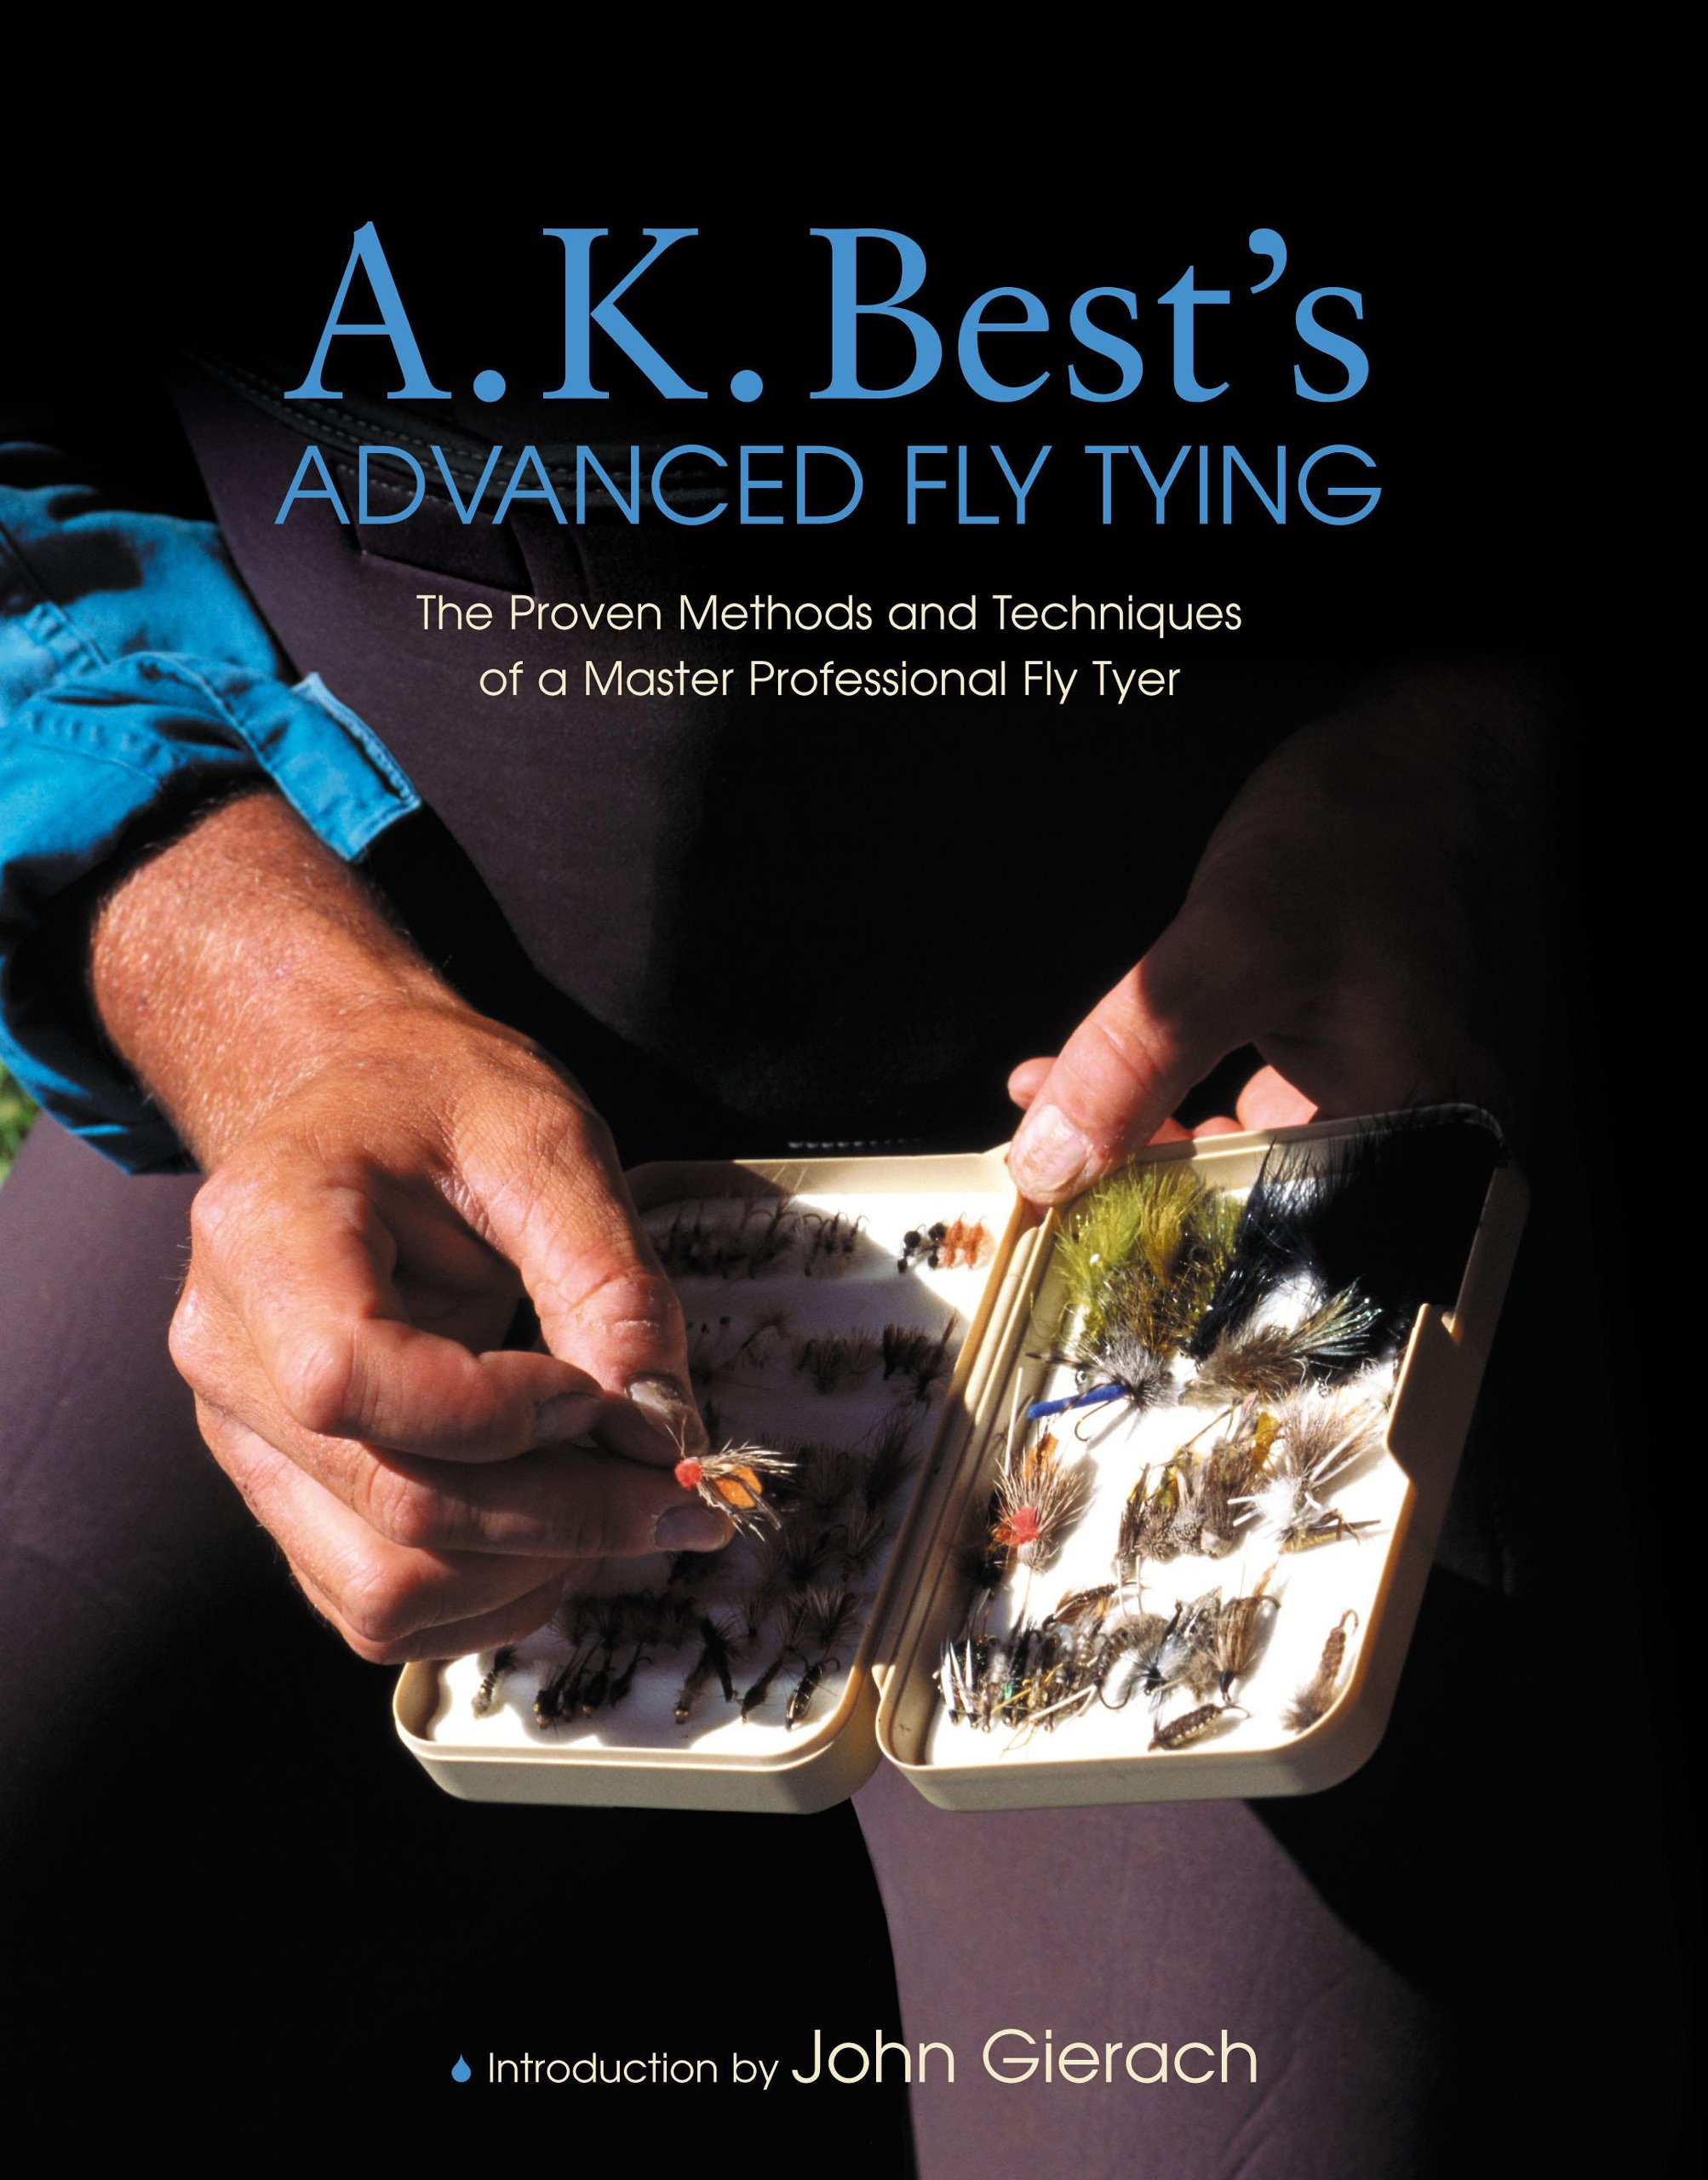 Image OfA. K. Best's Advanced Fly Tying: The Proven Methods And Techniques Of A Master Professional Fly Tyer